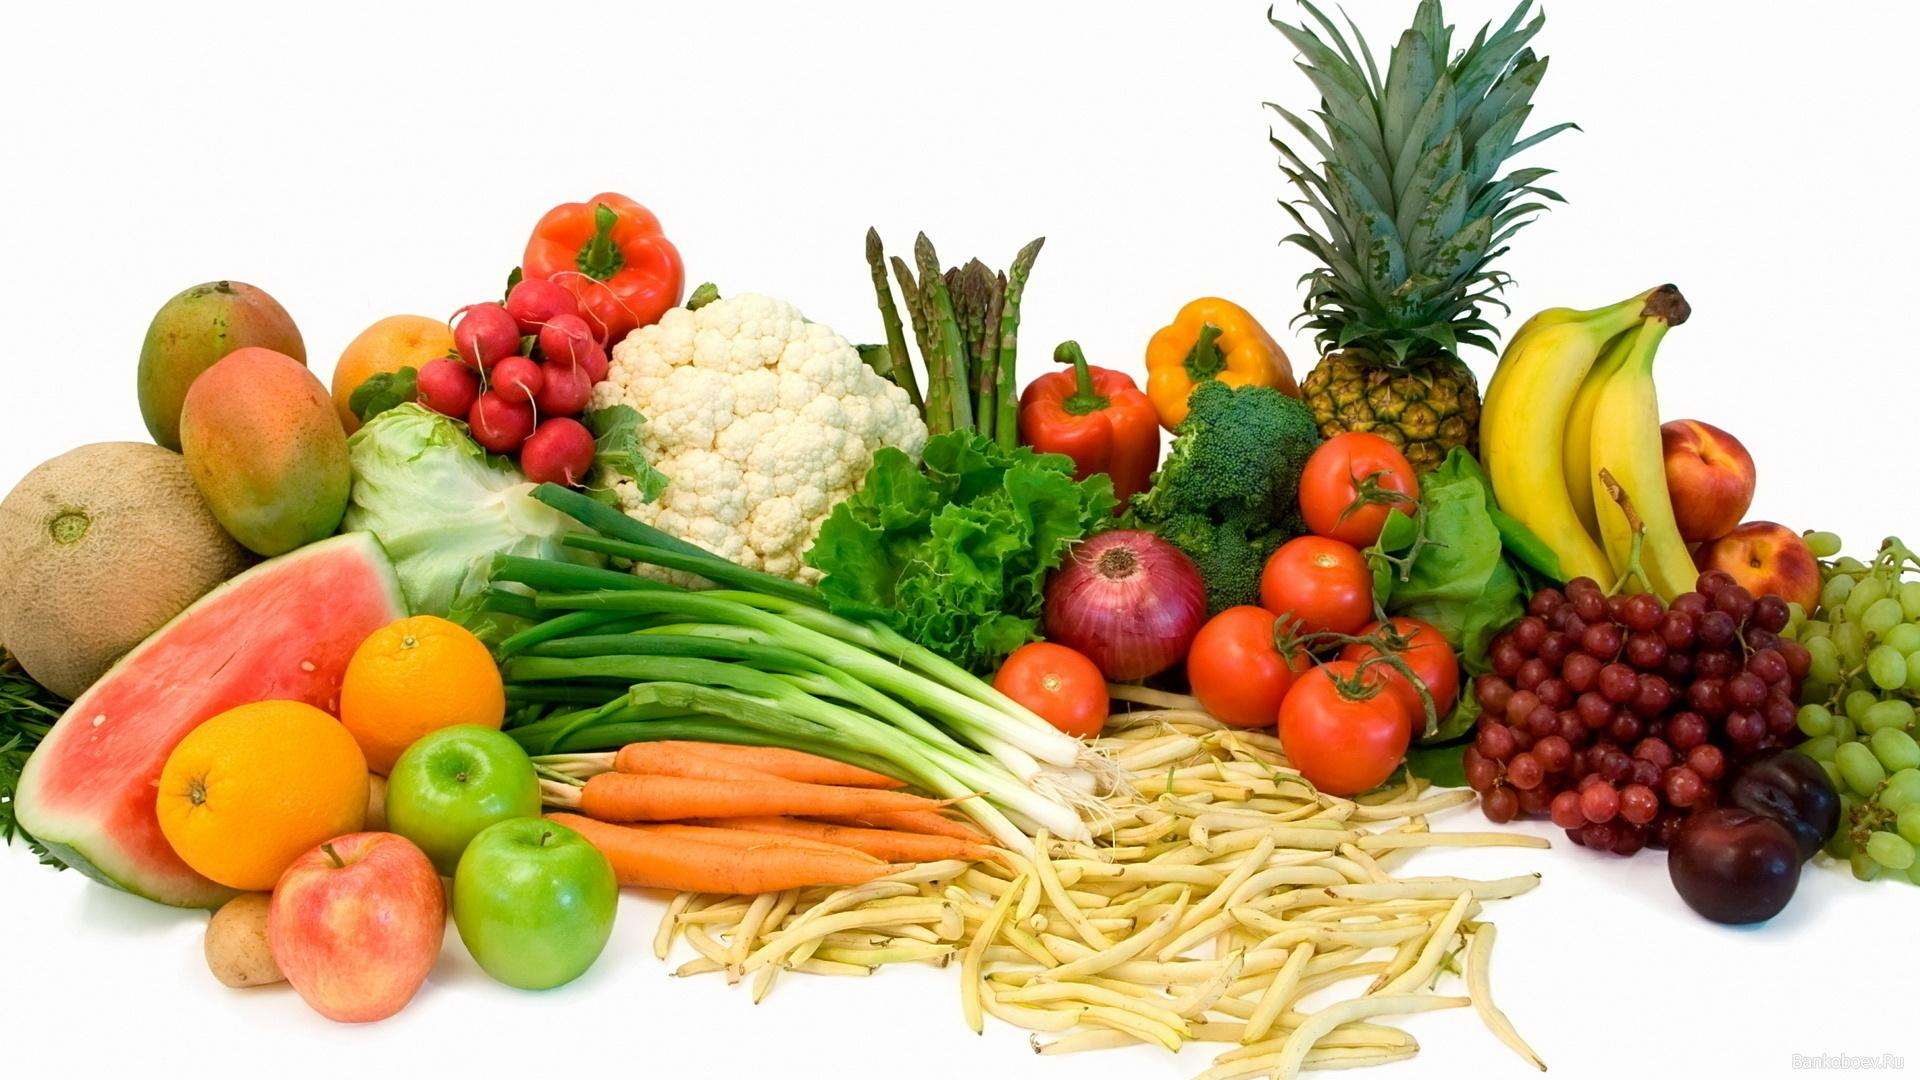 Images of Vegetables With Vitamin D - #rock-cafe